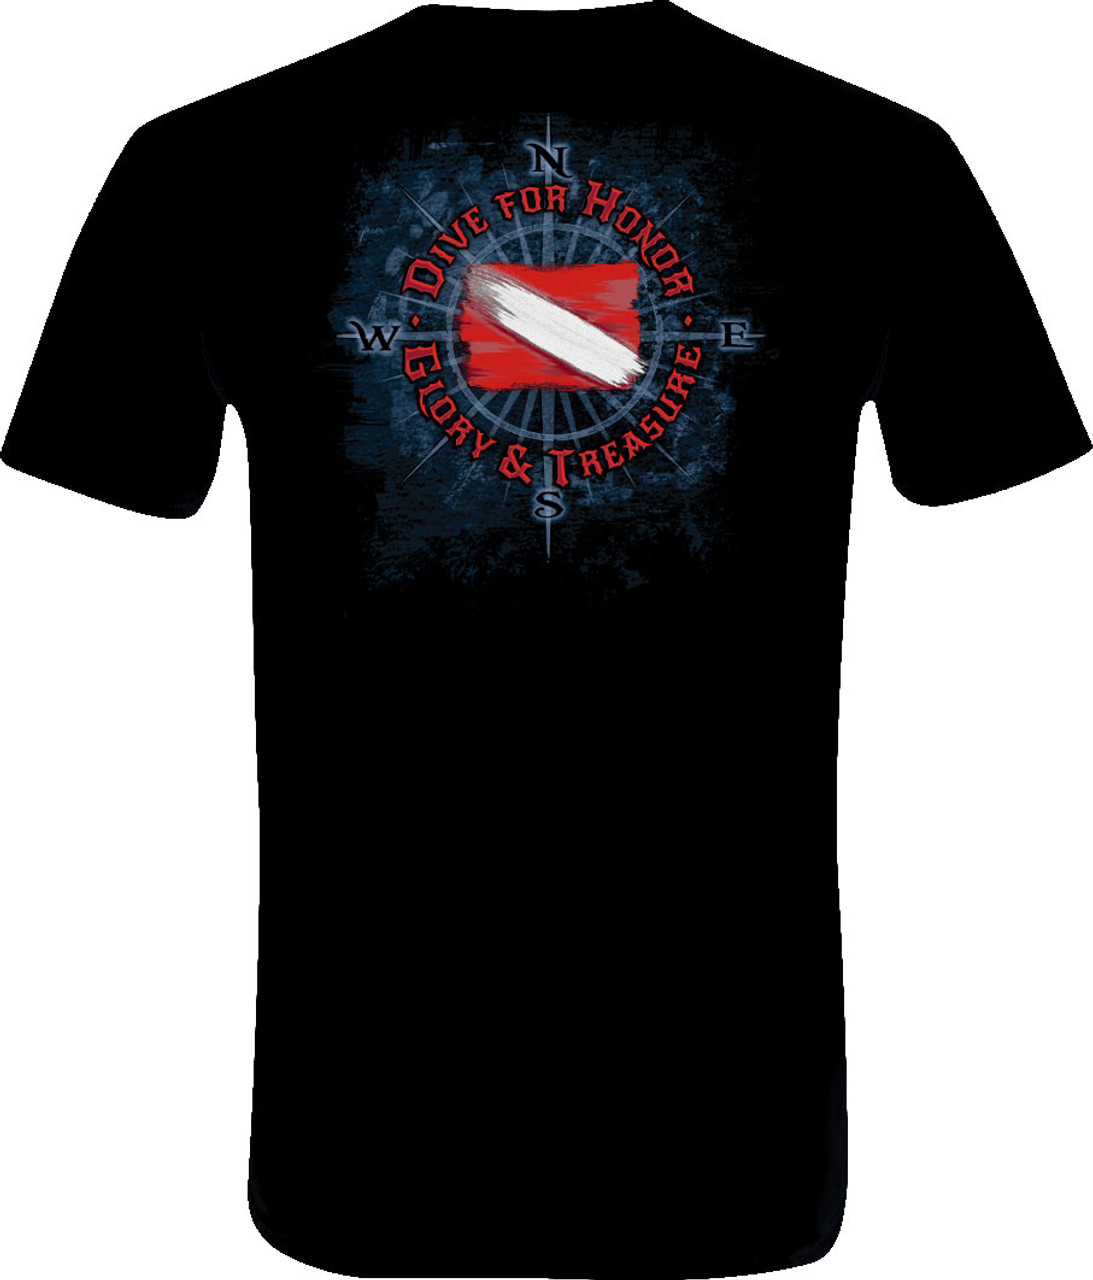 Amphibious Outfitters Scuba Diving T-Shirt - Honor & Glory - Black